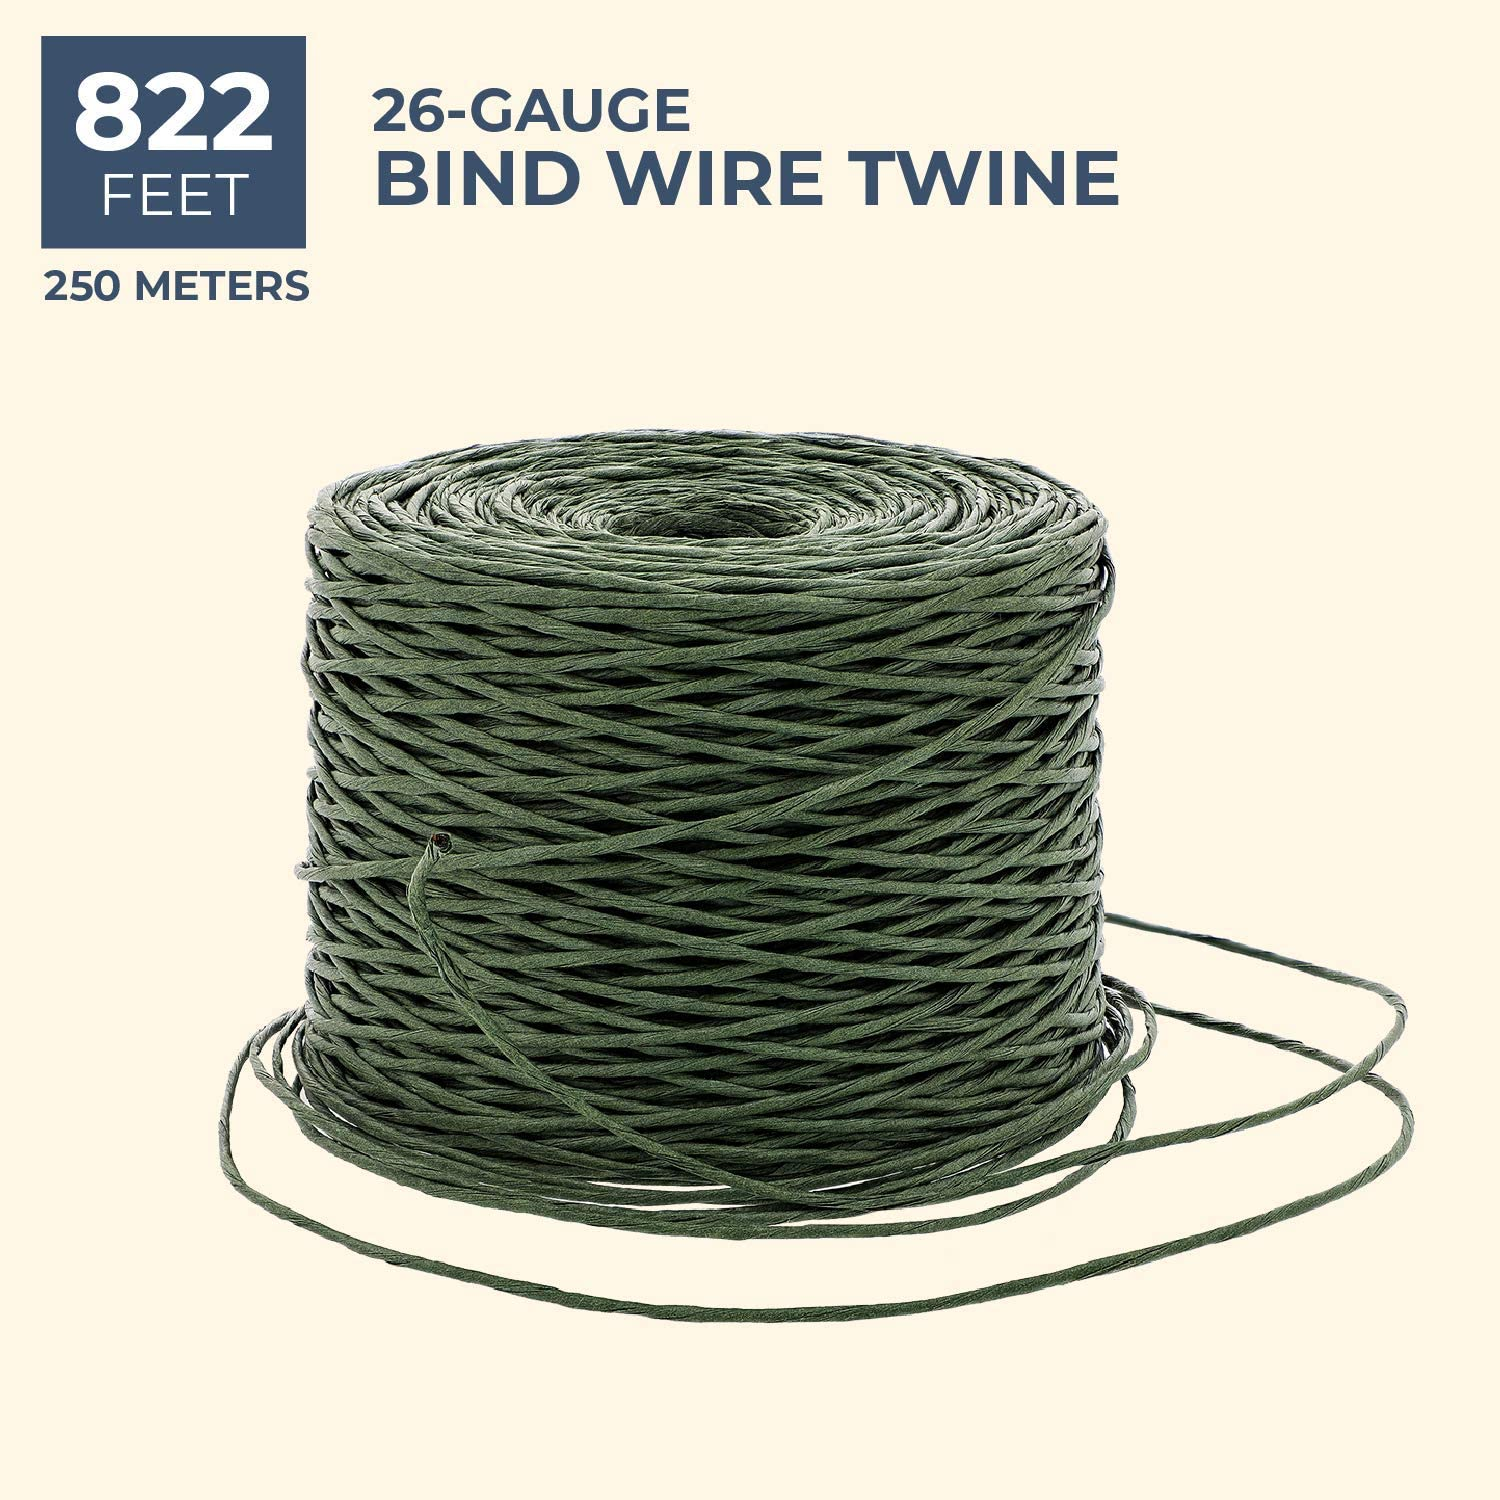 and Gift Wrapping Green Crafts 26 Gauge 822 Feet Bright Creations Bind Wire Twine for Flowers